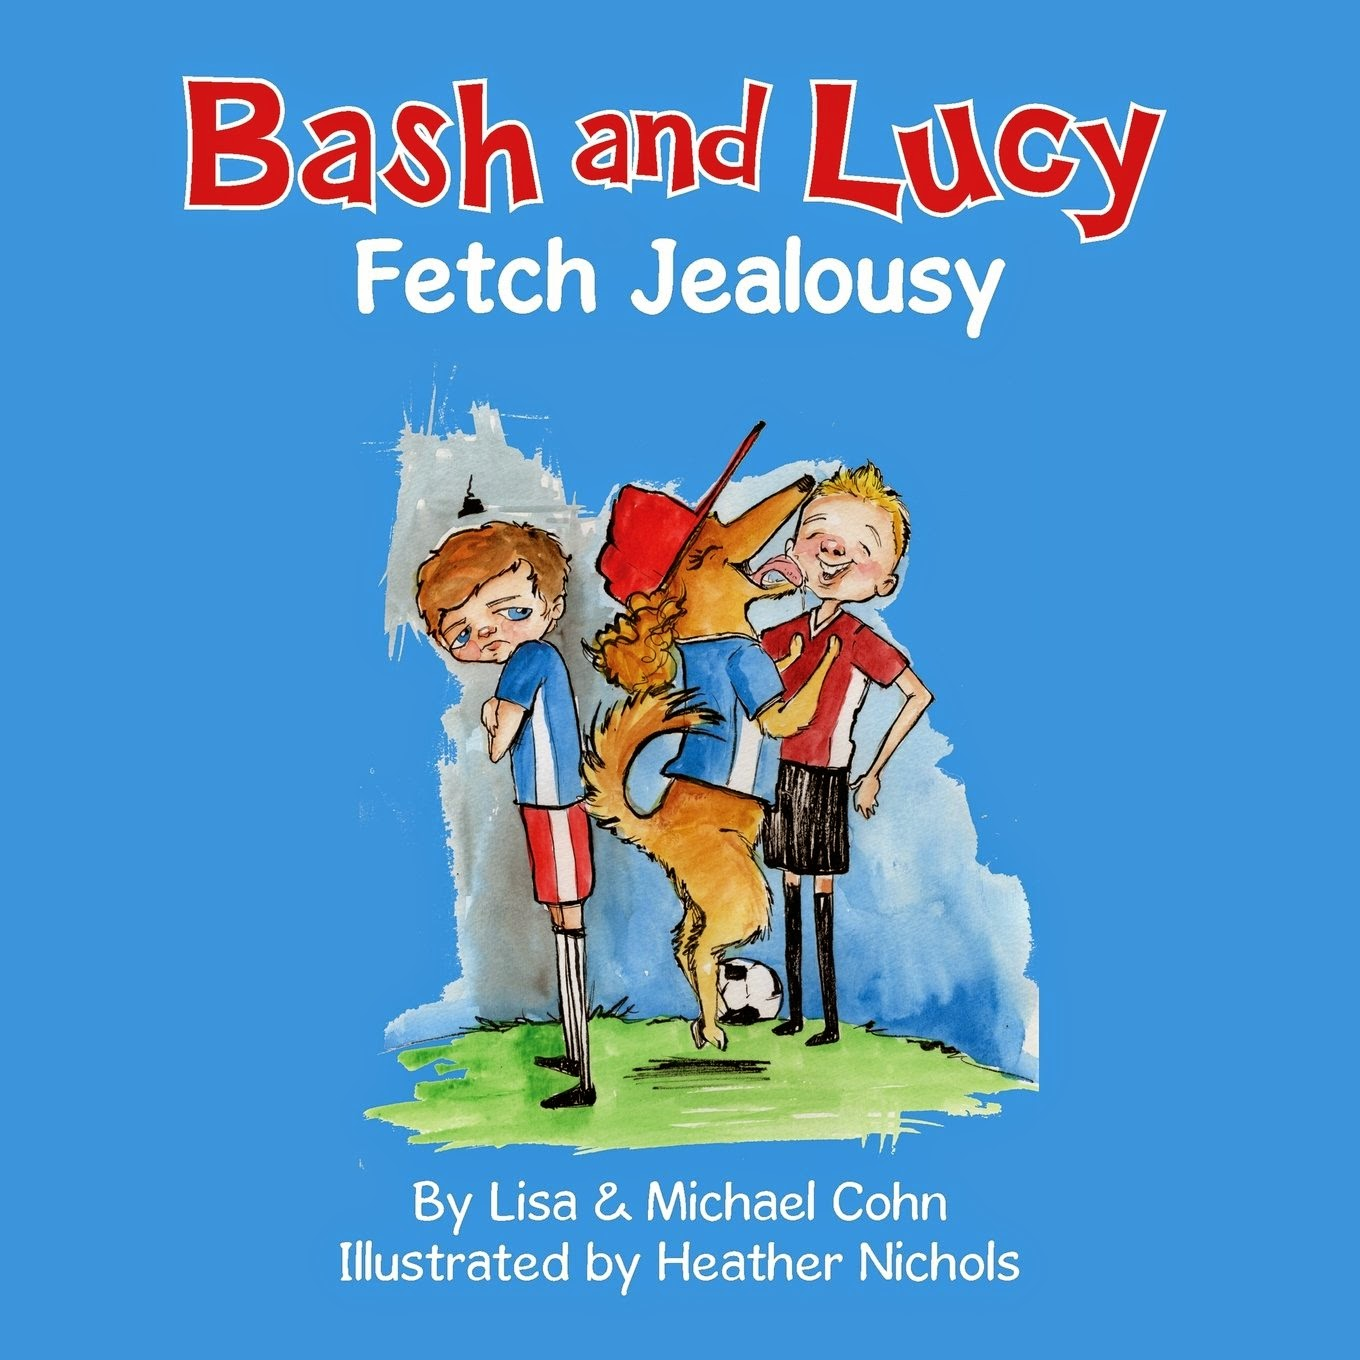 http://www.amazon.com/Bash-Lucy-Fetch-Jealousy-Lisa/dp/0692332111/ref=sr_1_1?s=books&ie=UTF8&qid=1426196254&sr=1-1&keywords=bash+and+lucy+fetch+jealousy